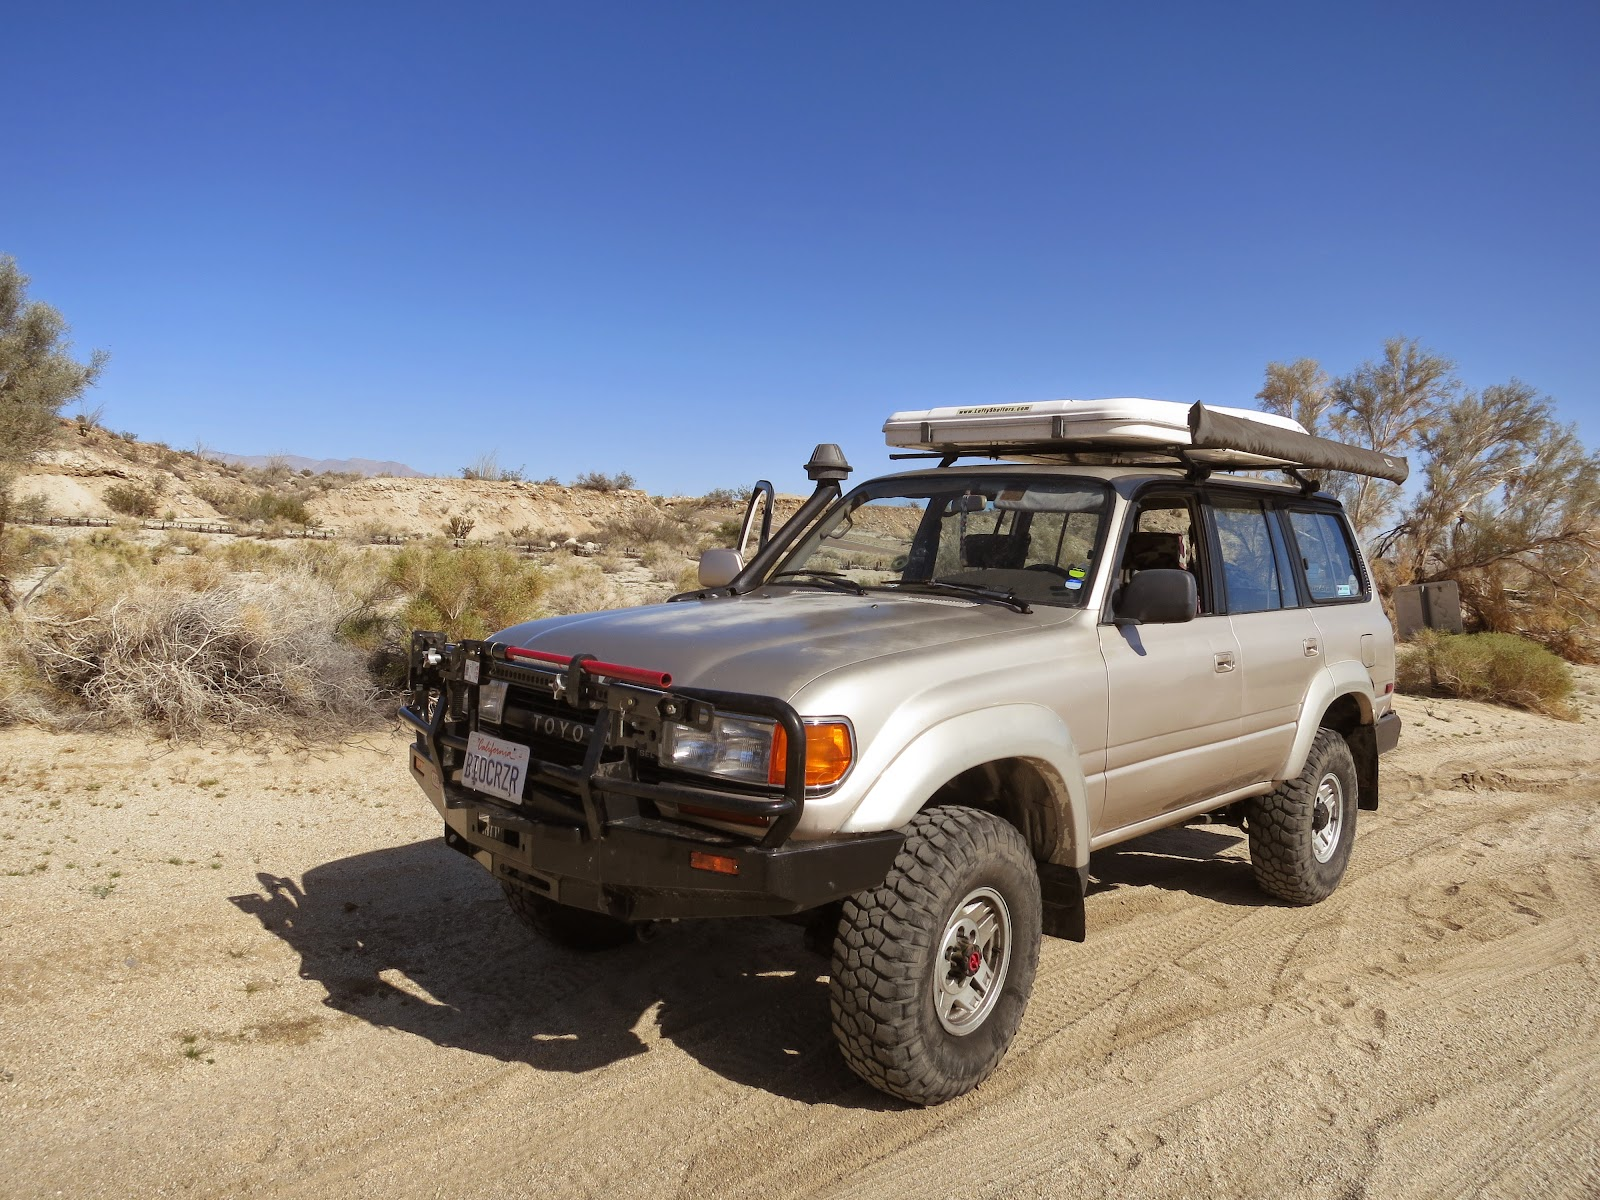 Our desert wildflower hunting vehicle